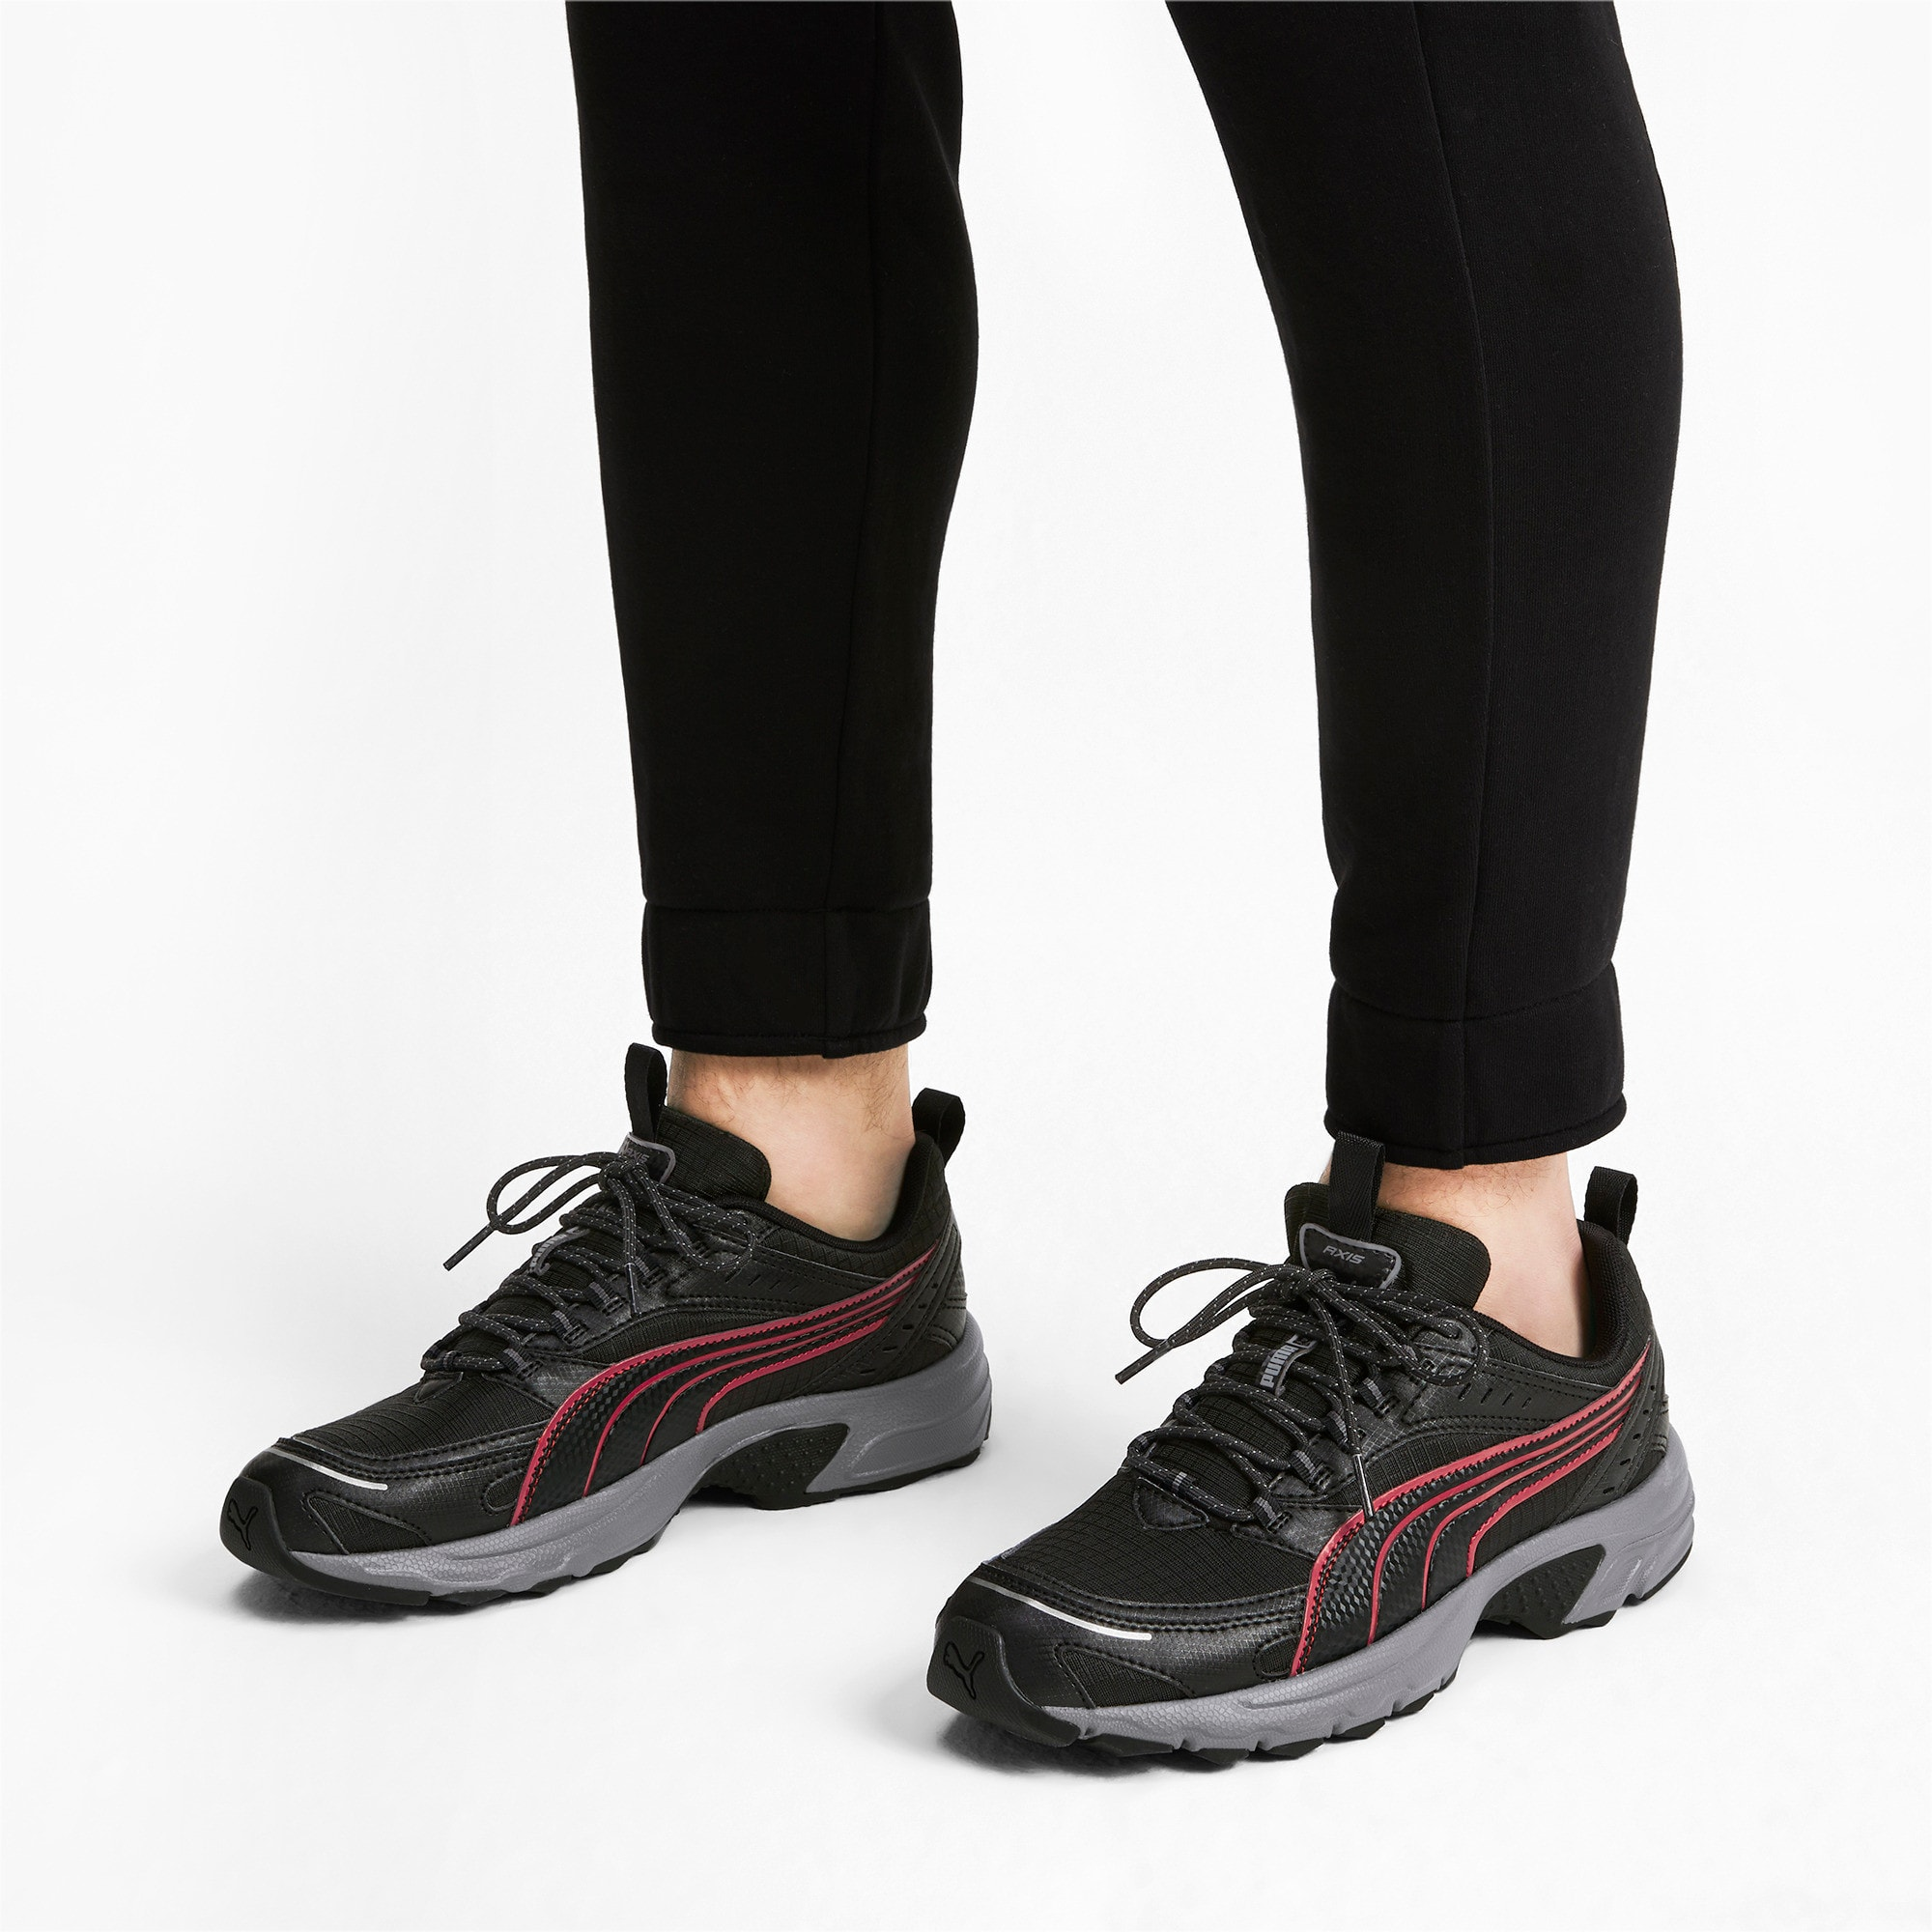 Thumbnail 2 of Axis Trail Sneakers, Black-High Risk Red-Silver, medium